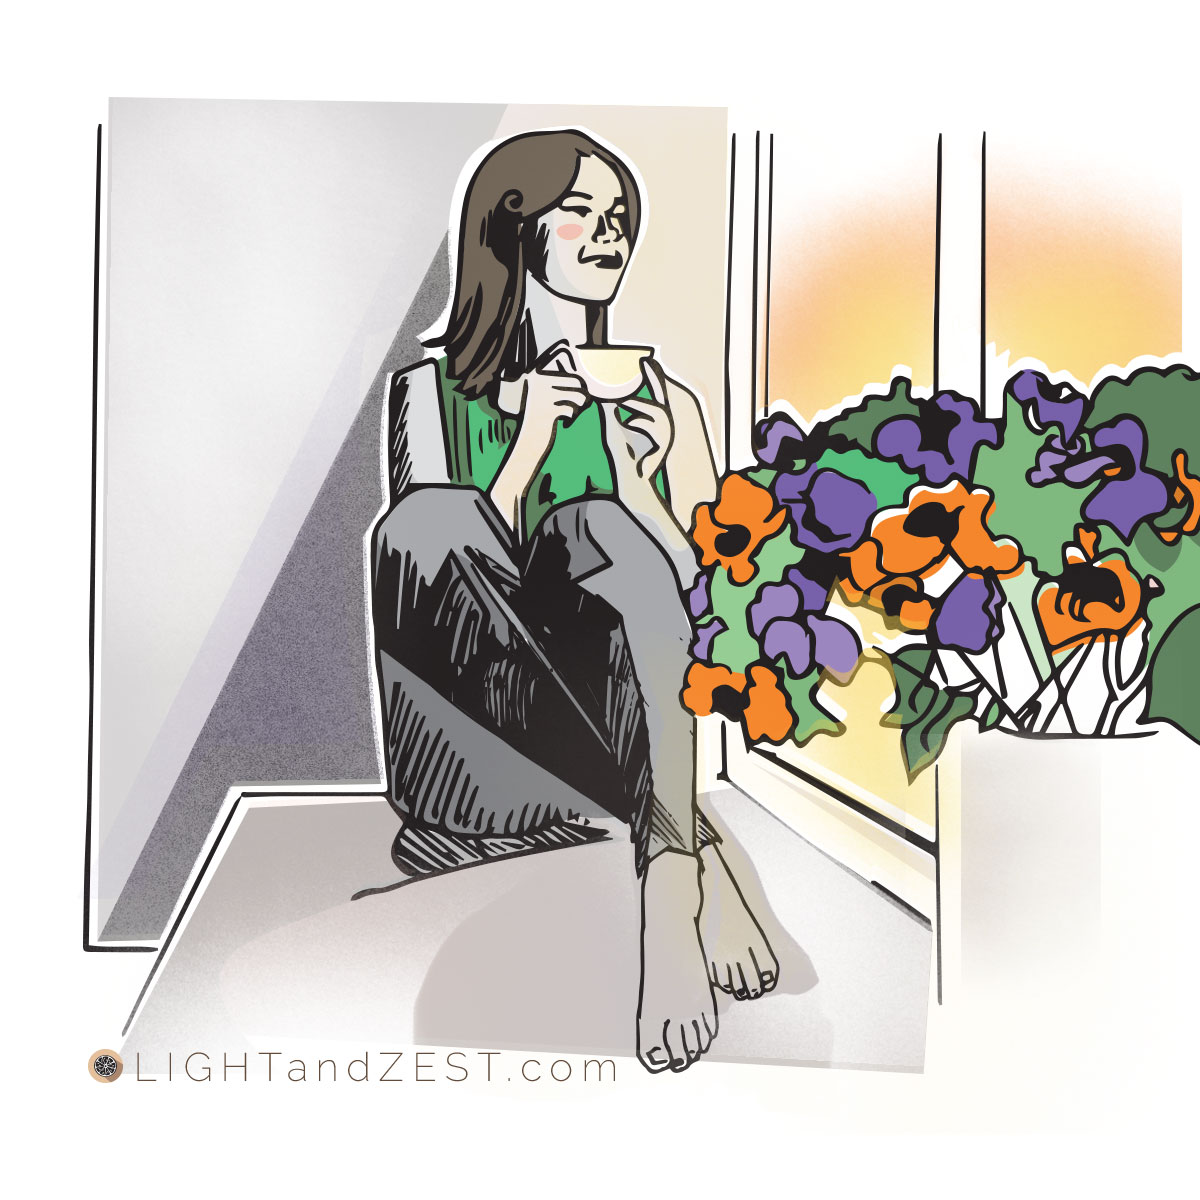 Illustration of a pleased woman sitting in a bay window, sipping from coffee cup, looking outside a window with a sunrise, flowers